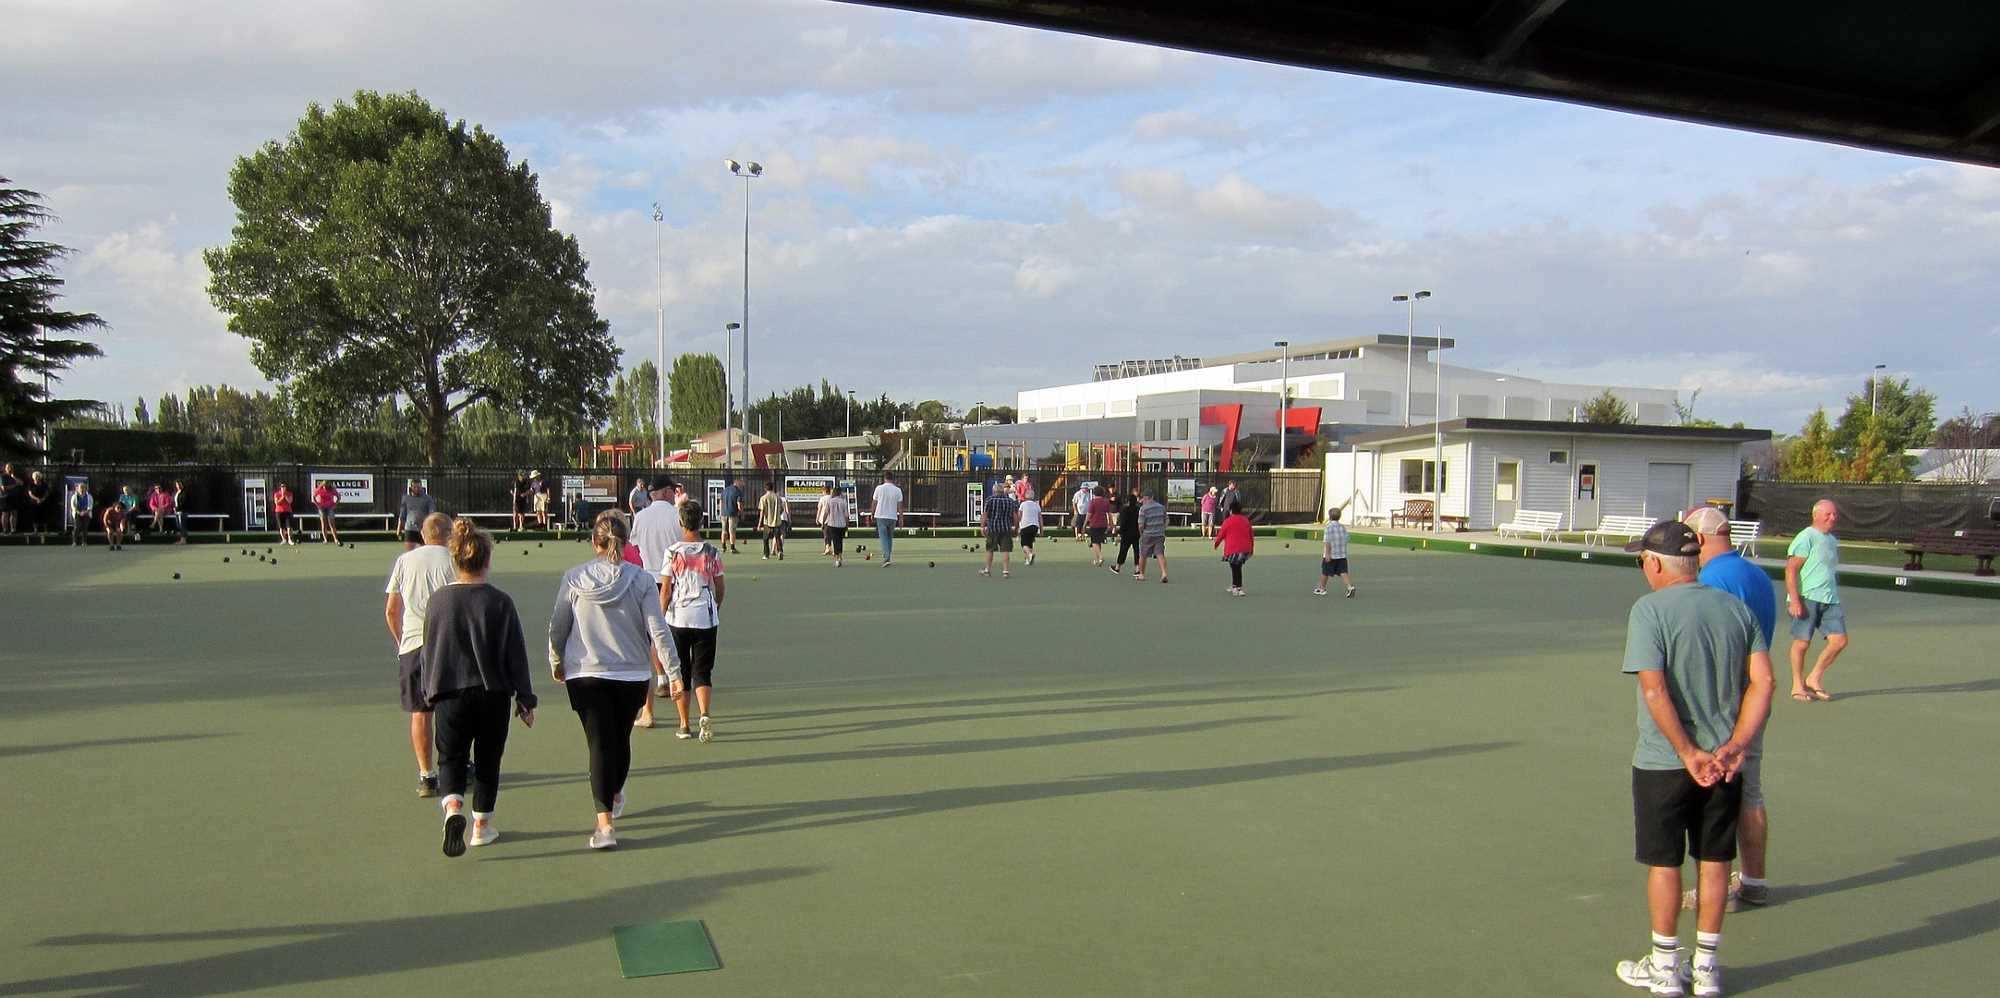 Community Bowls - The evening sun on Green 2 with the Event Centre behind - 21 Jan